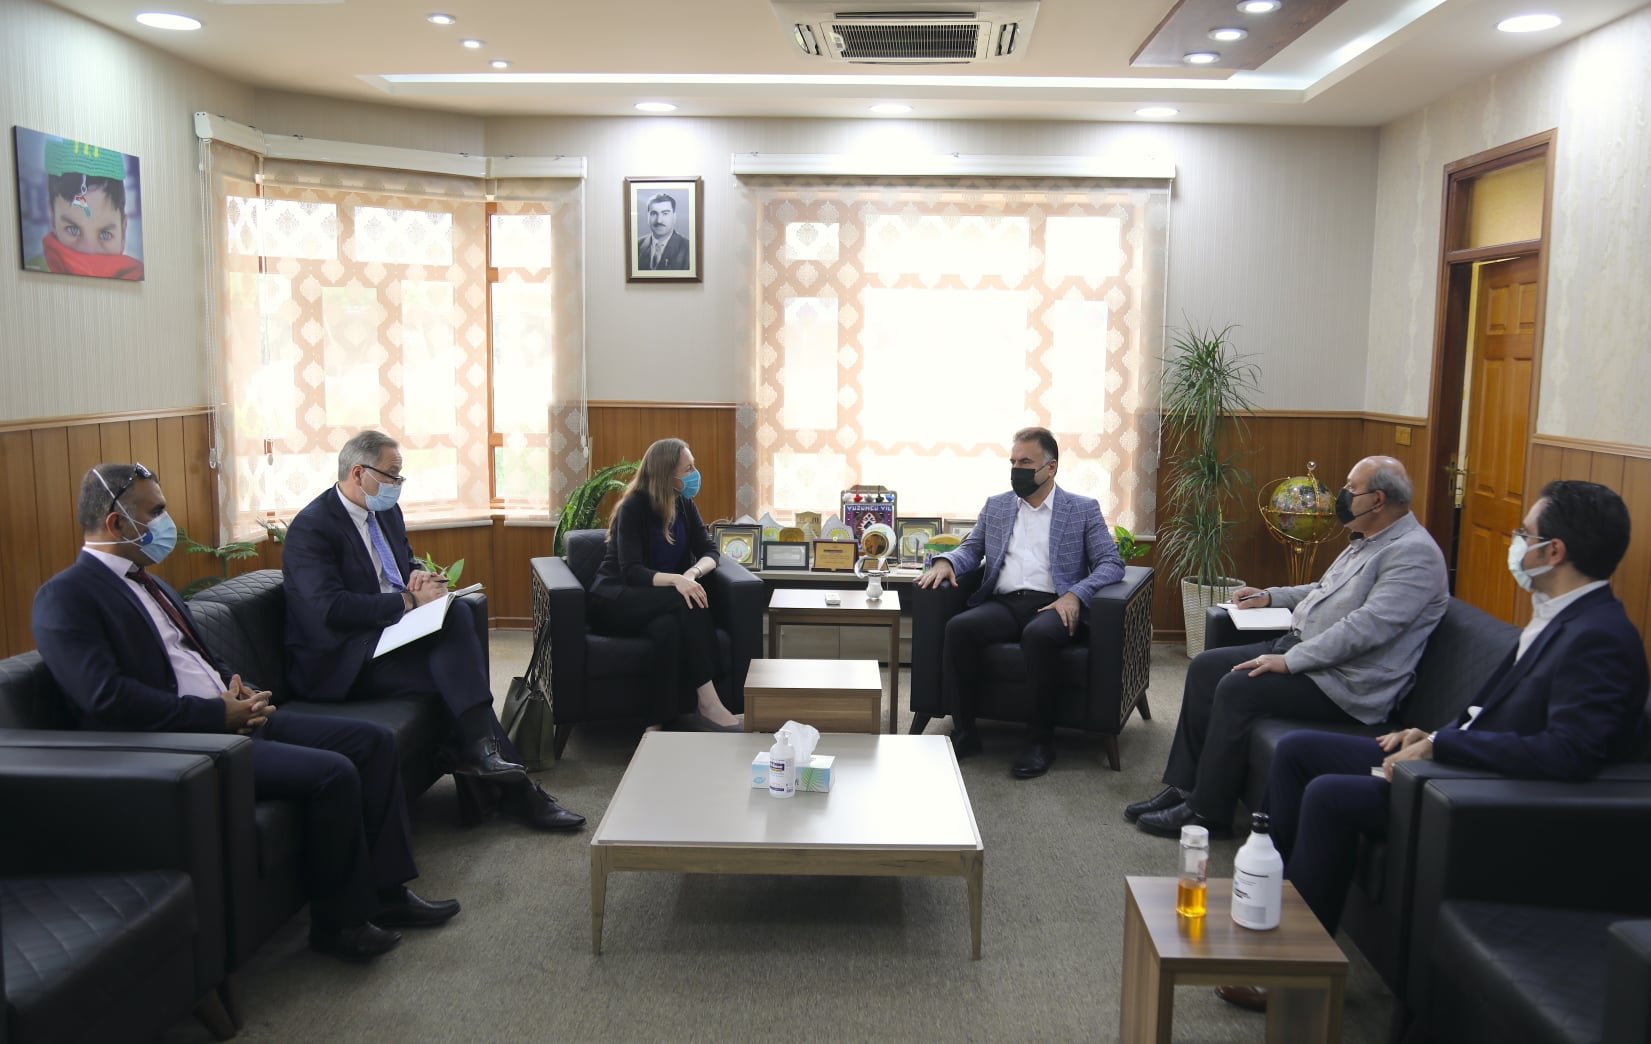 The Rector of The Erbil Polytechnic University Received A Delegation Of The U.S. Consulate General Erbil